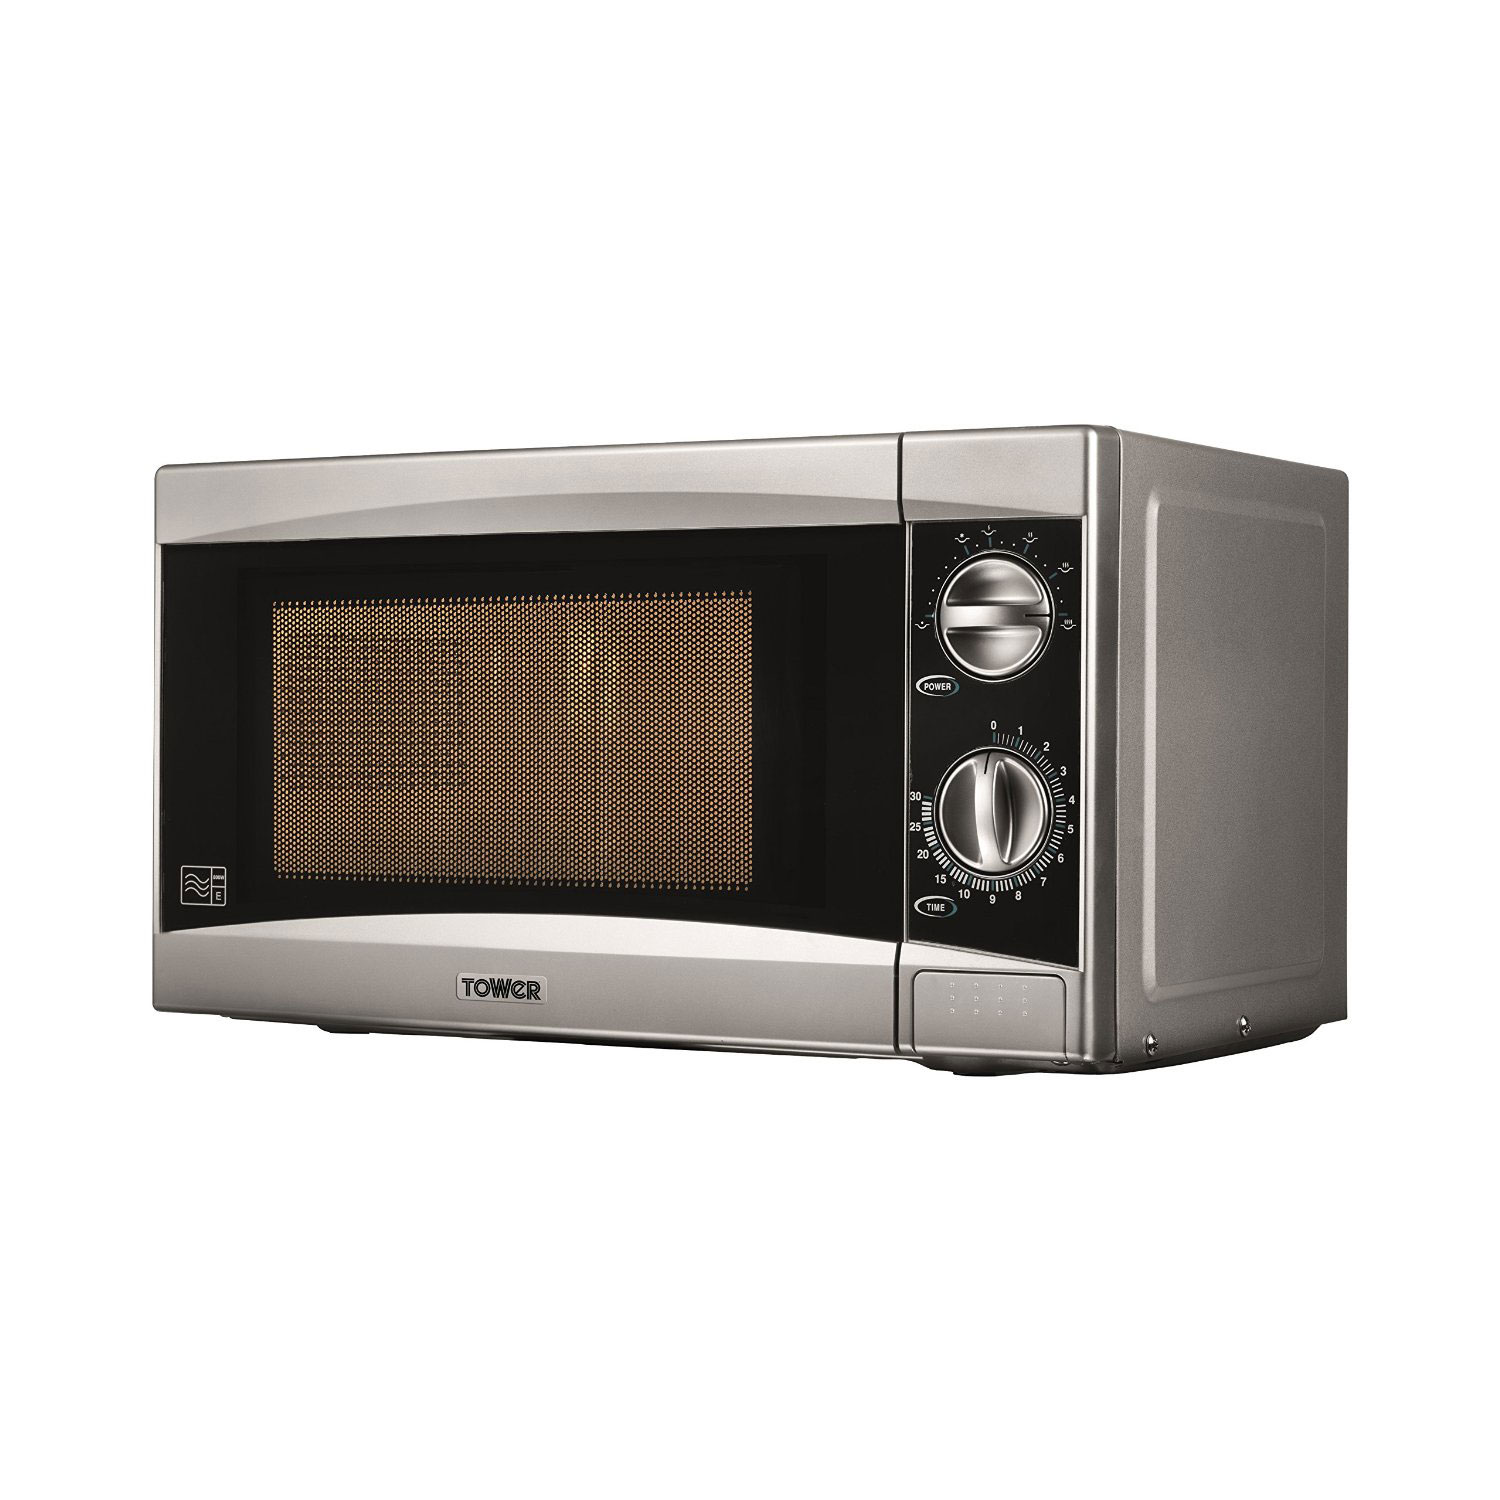 Tower T24001 20 Litre Microwave Review Microwave Review